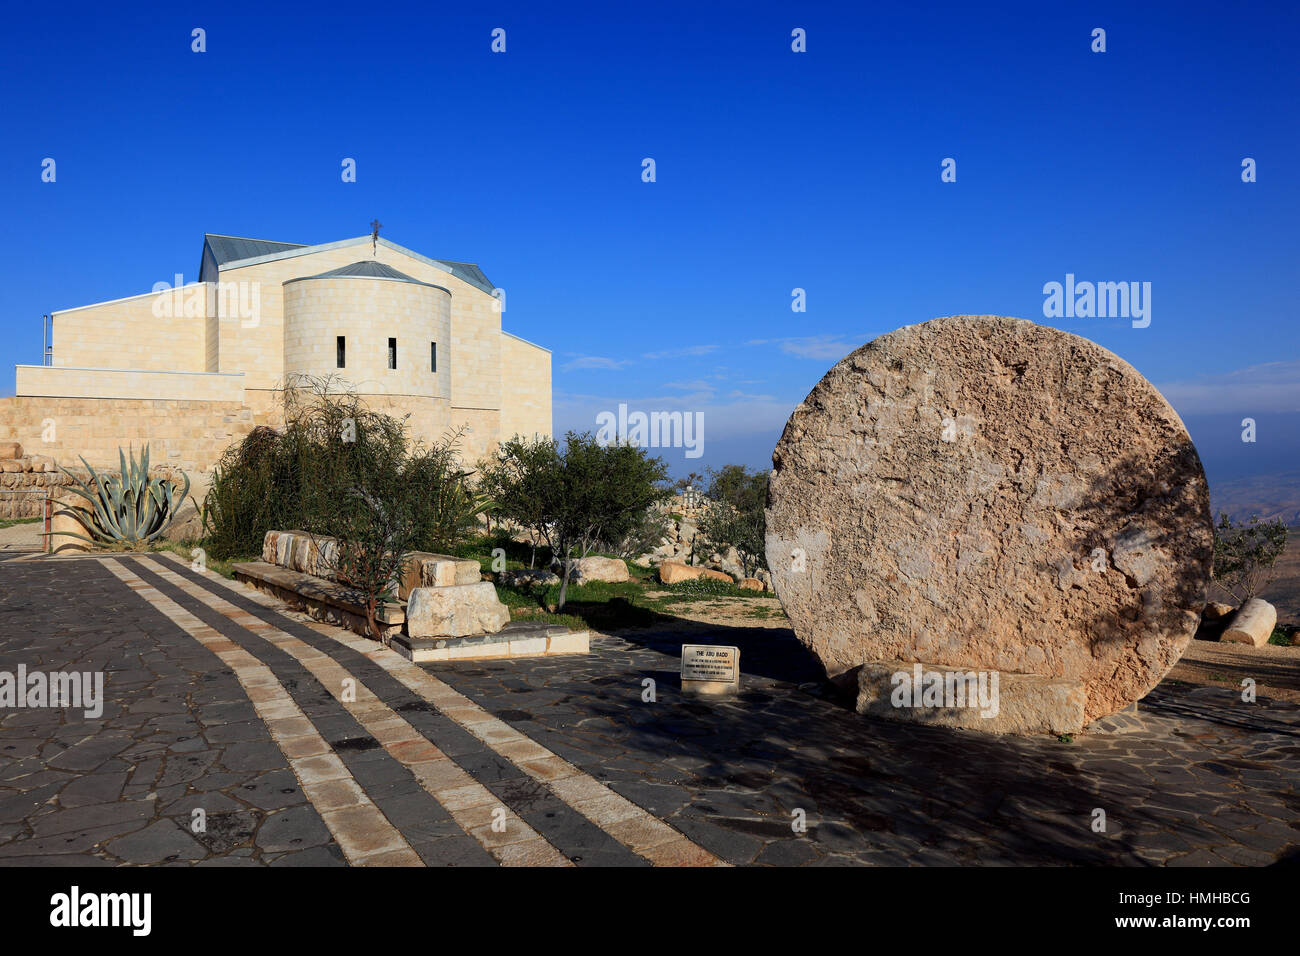 rolling stone and Mose church on top of Mount Nebo, Jordan - Stock Image